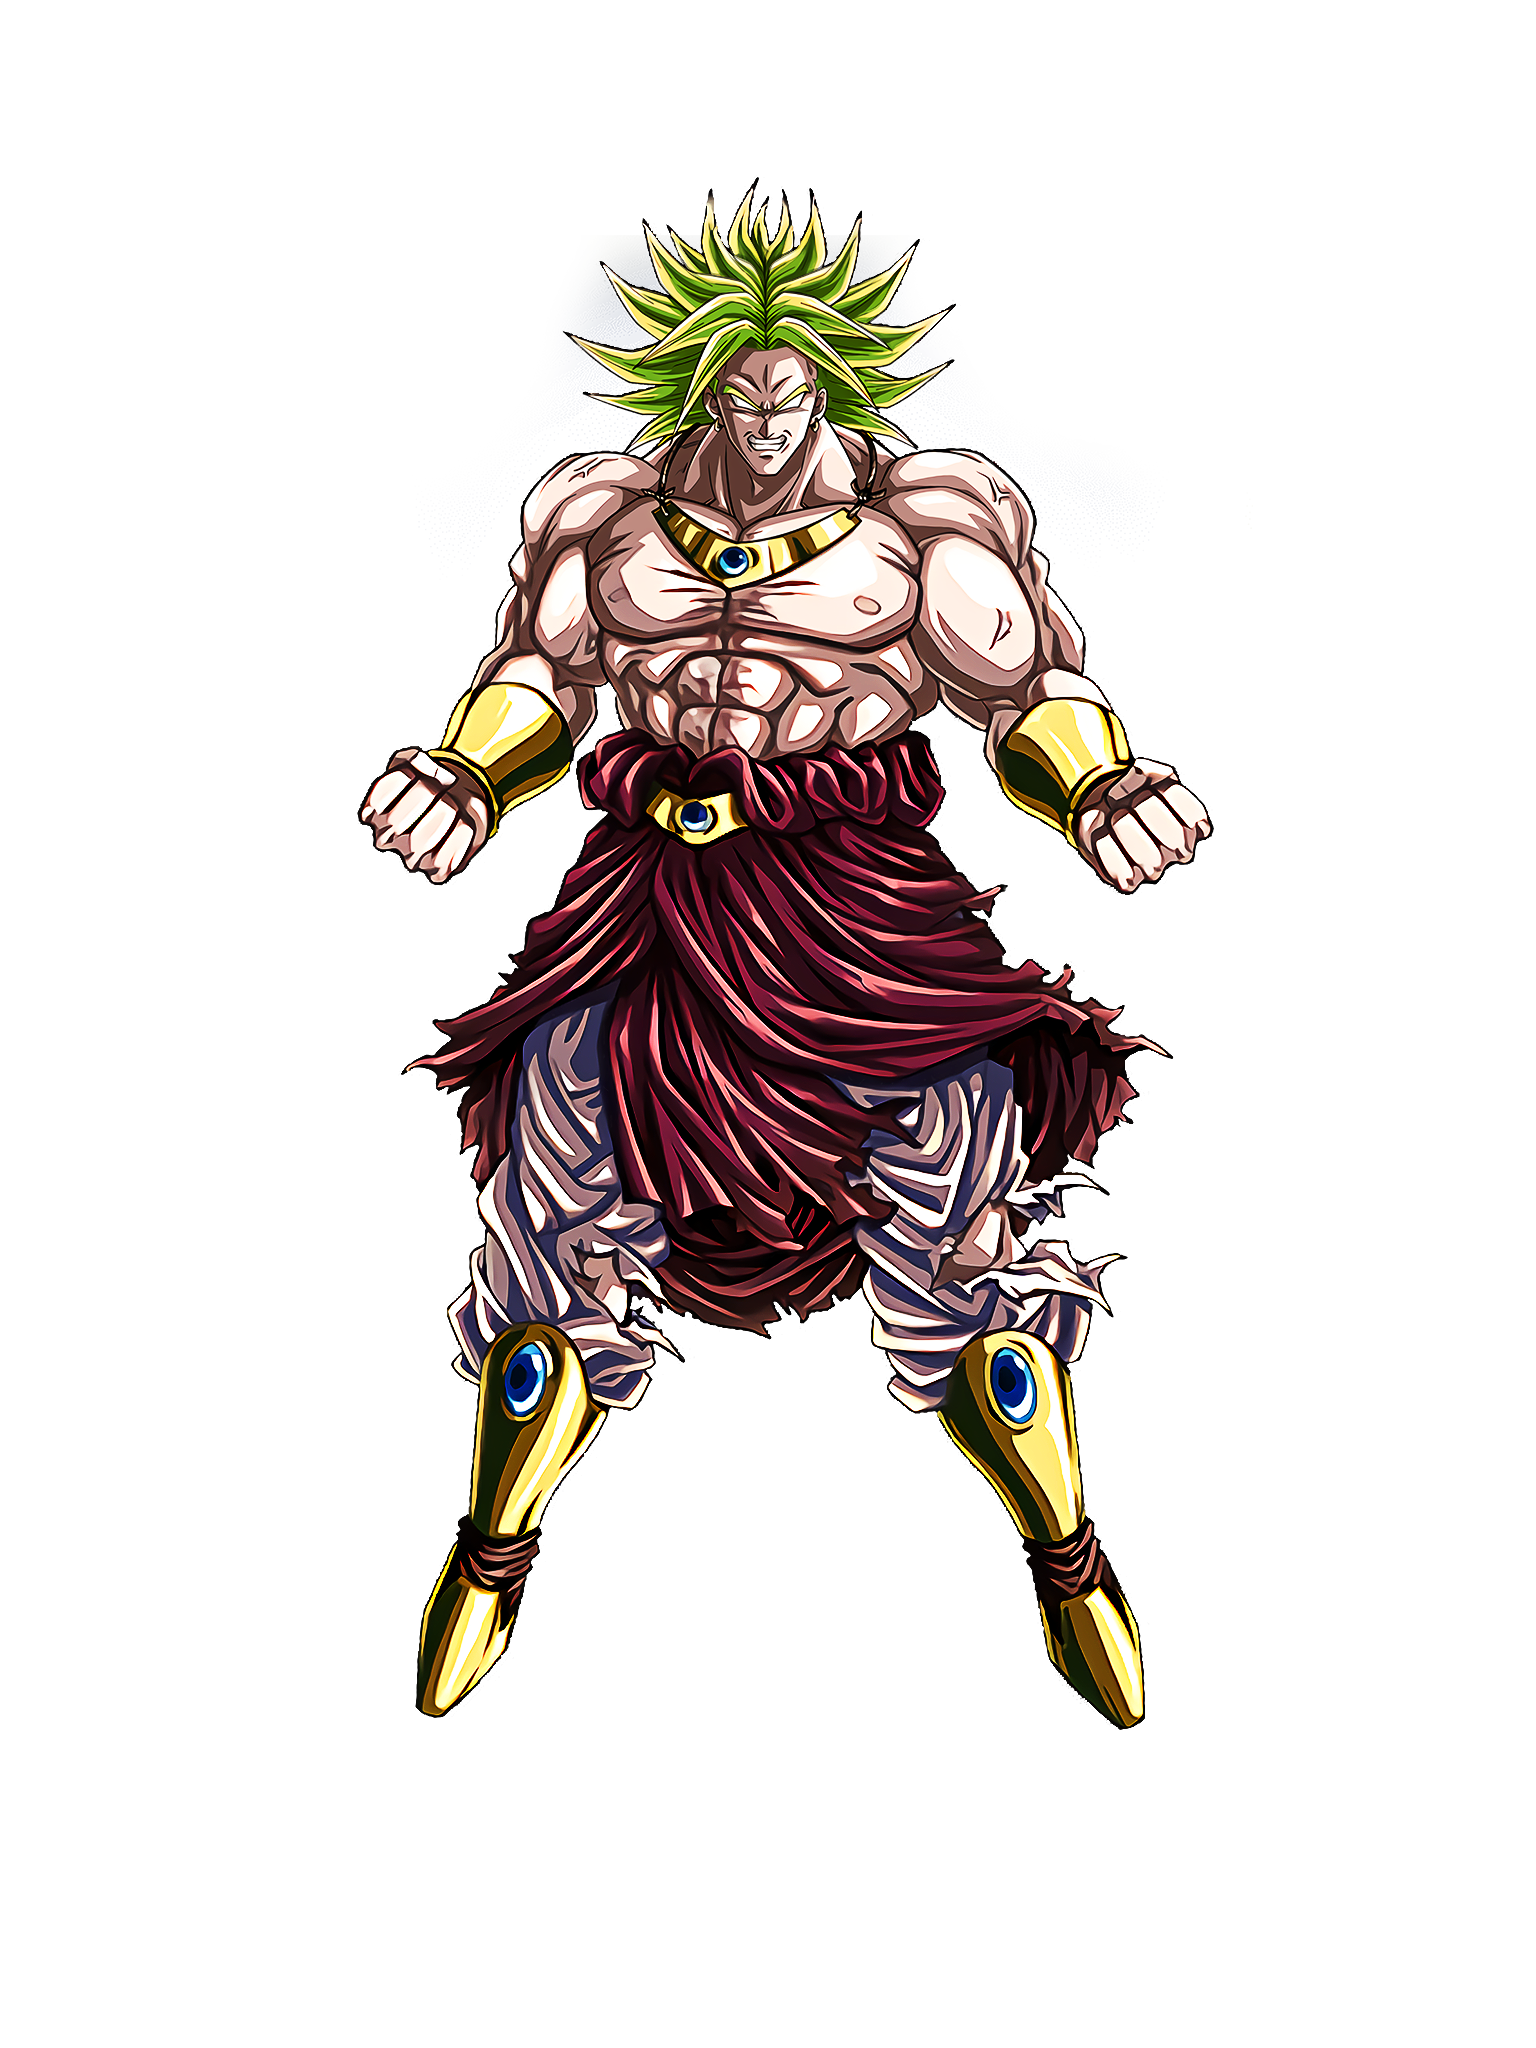 Indestructible Saiyan Evil Legendary Super Saiyan Broly Render (Dragon Ball Z Dokkan Battle) .png